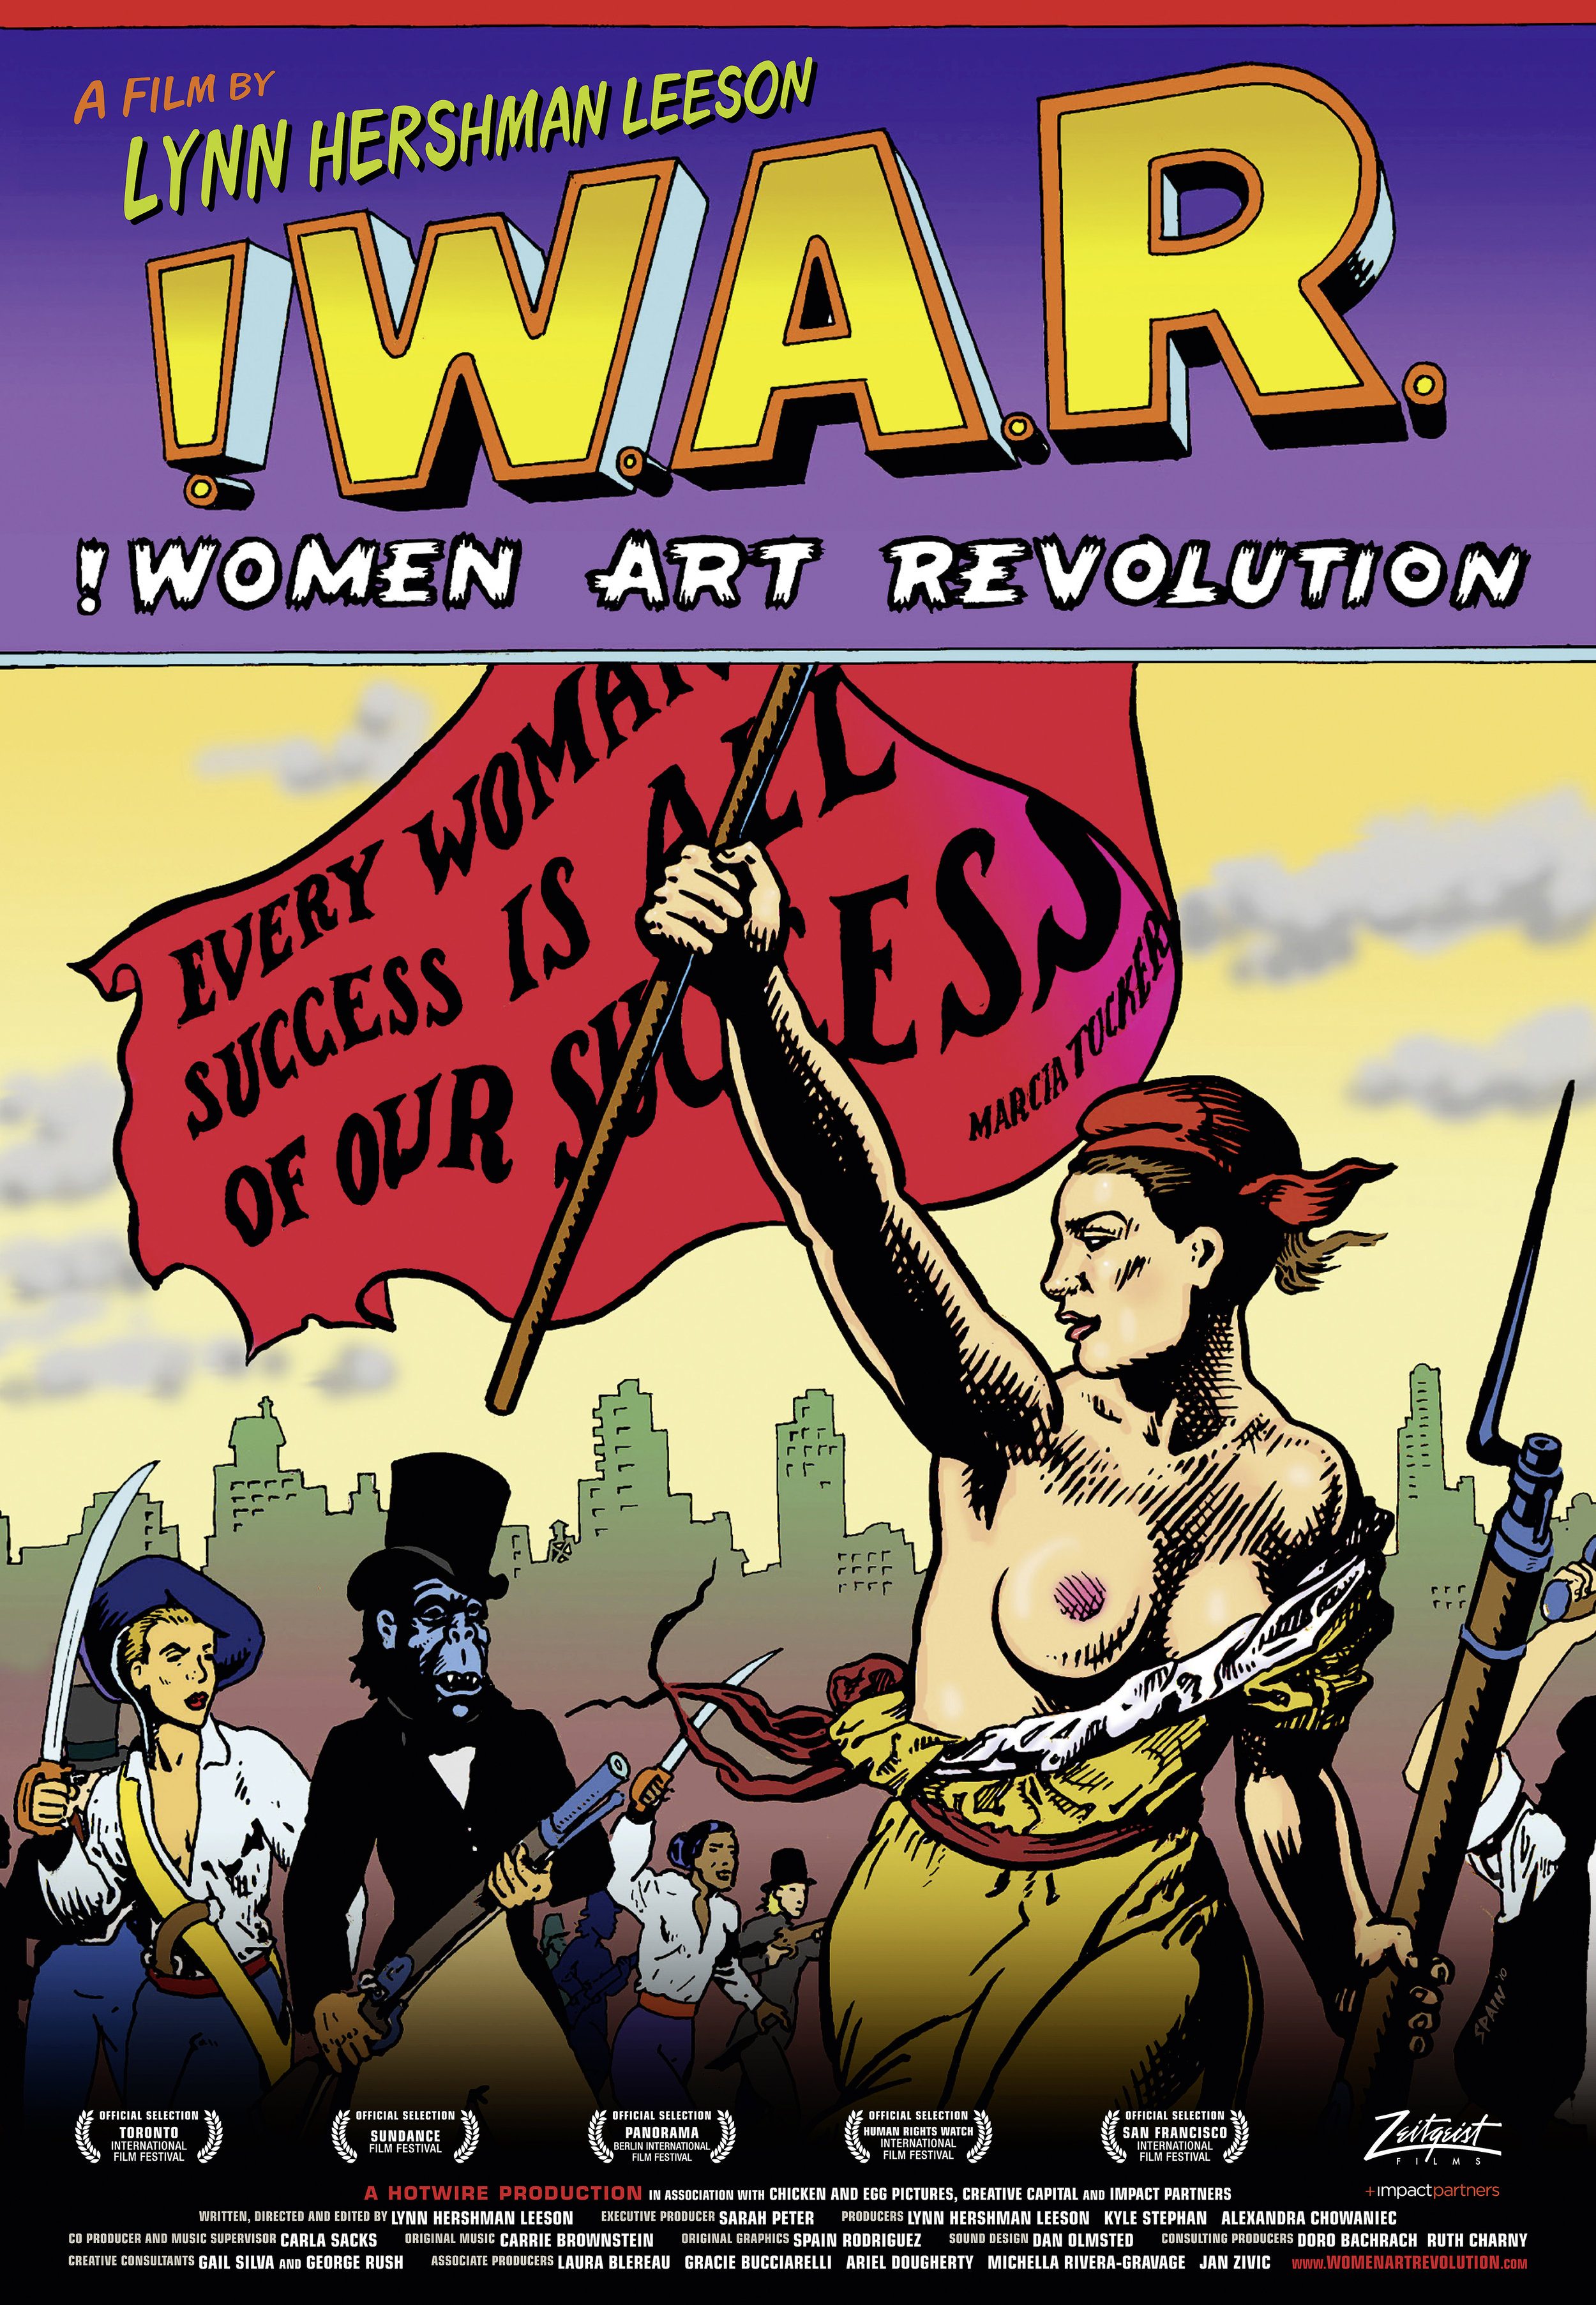 CR_WAR Poster.COMIC.adjust_rgb.jpg